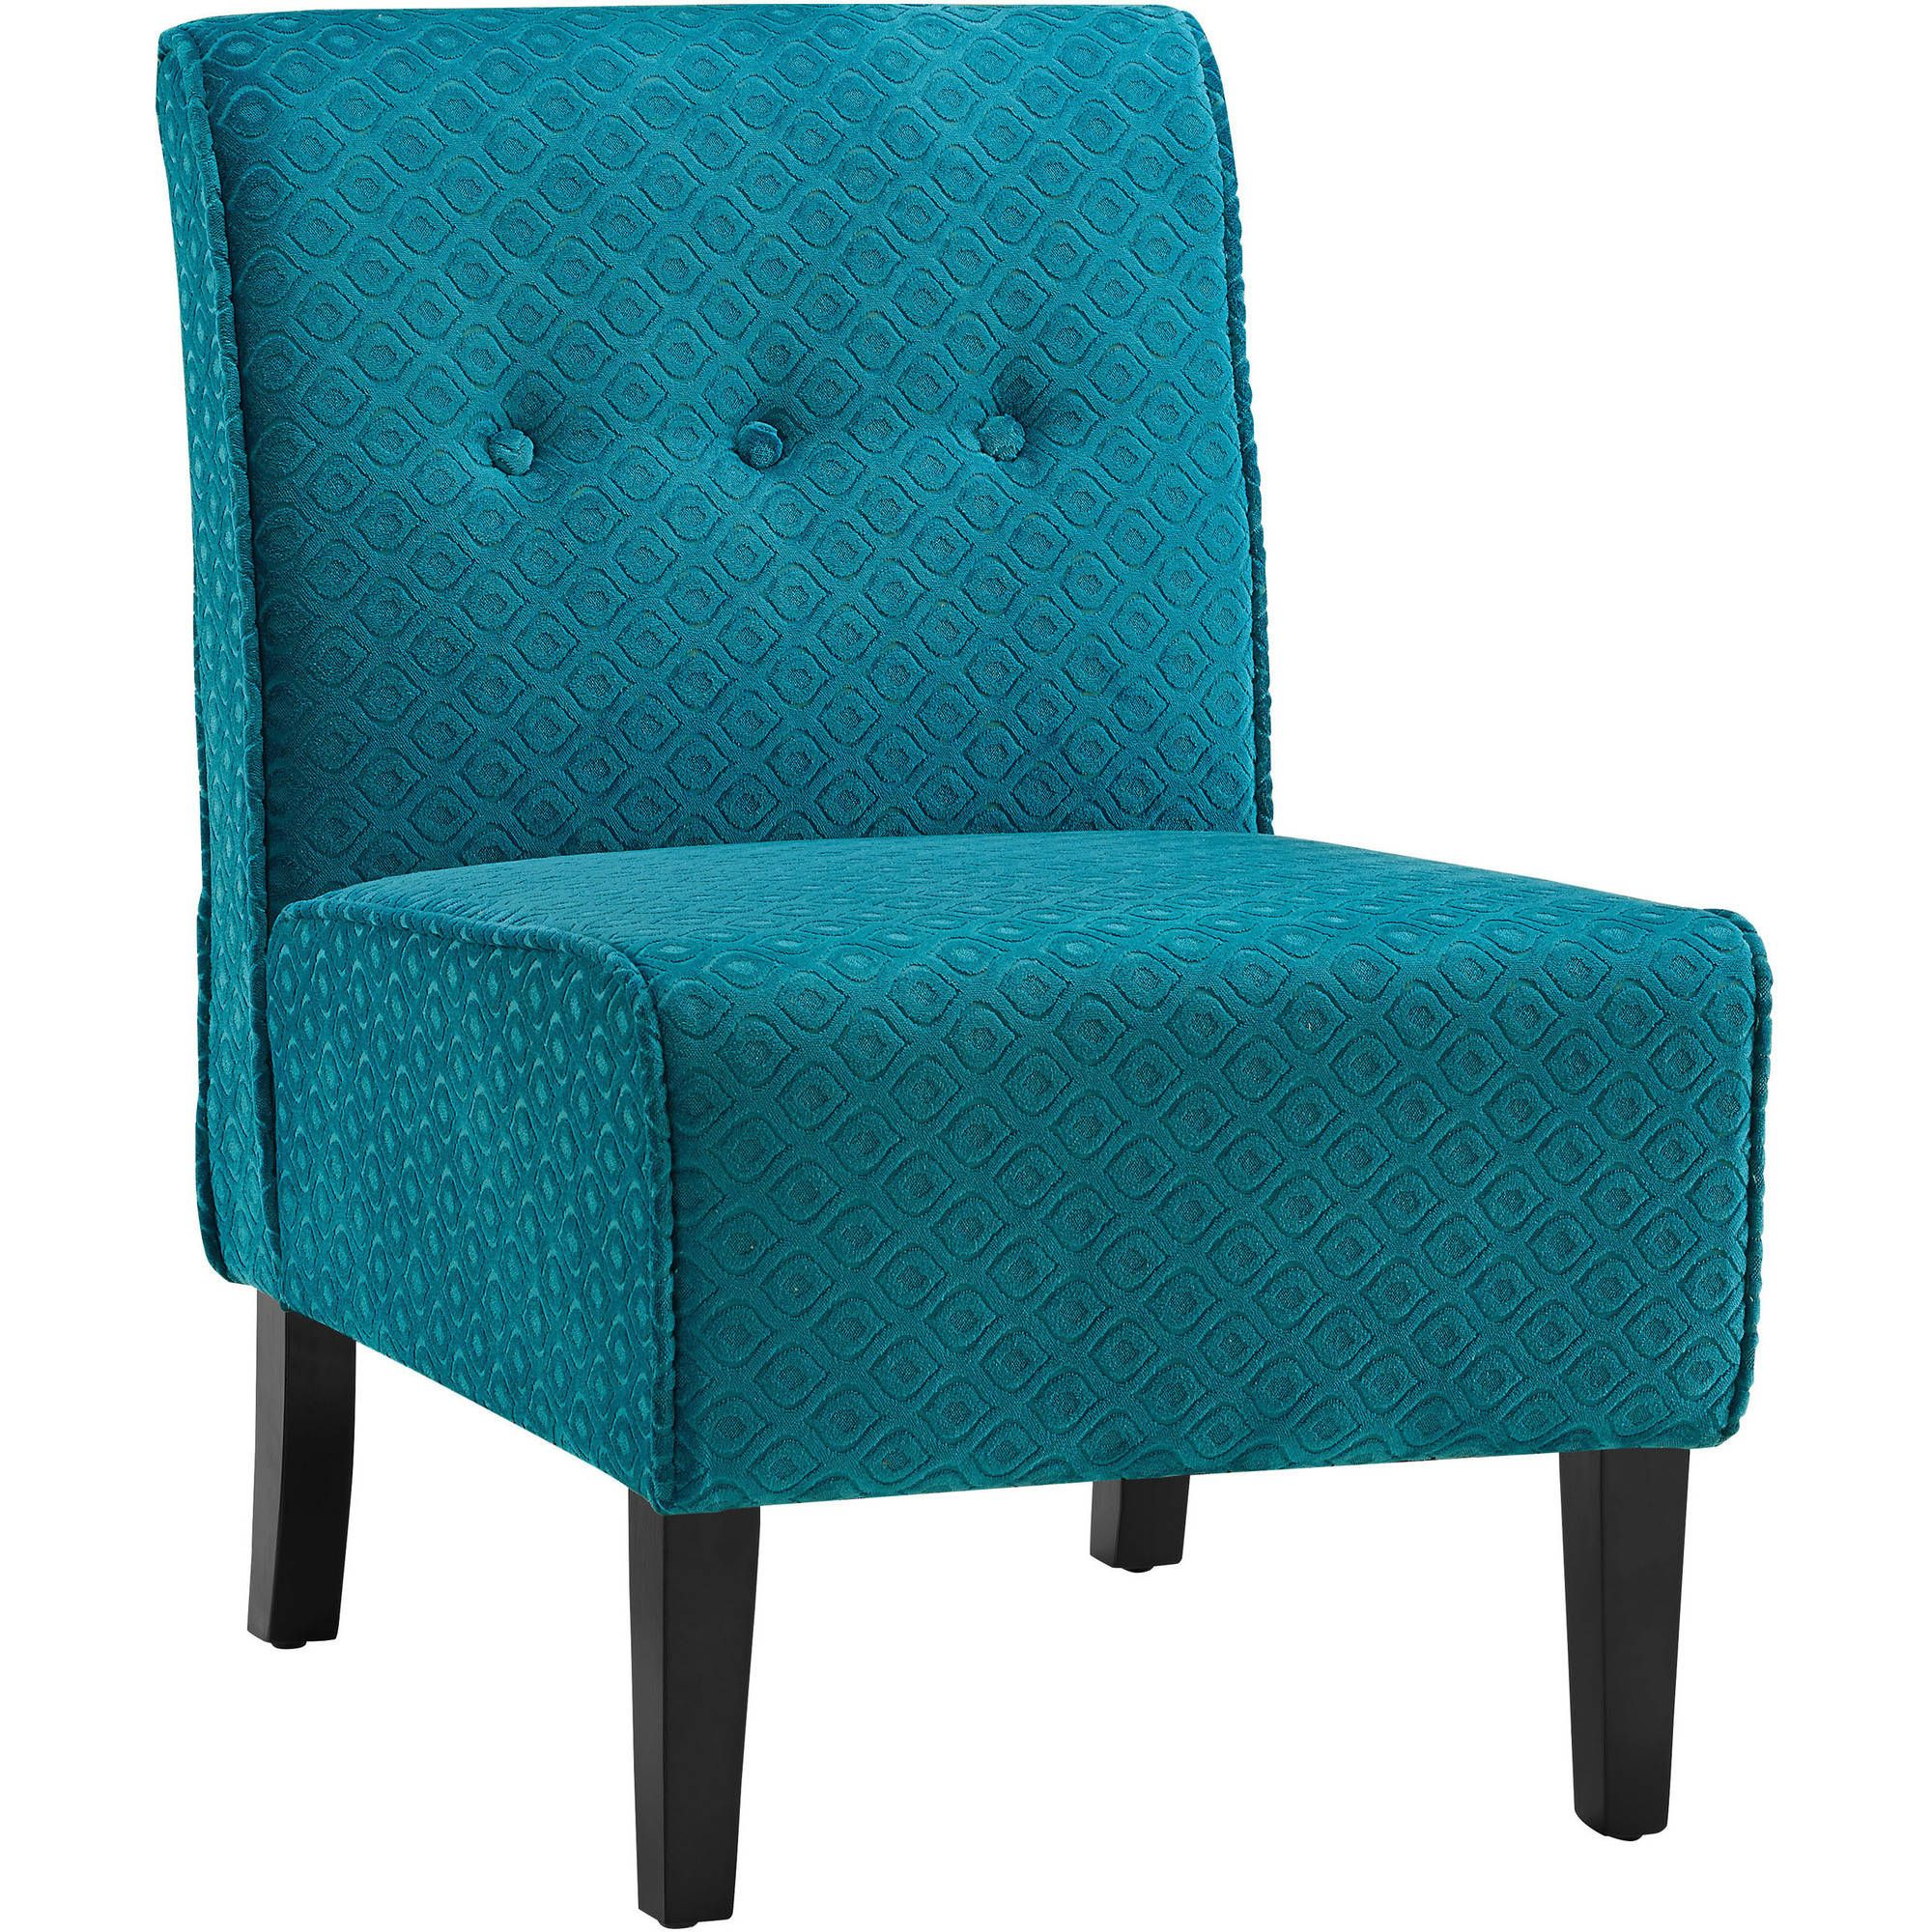 Coco teal blue accent chair blue accent